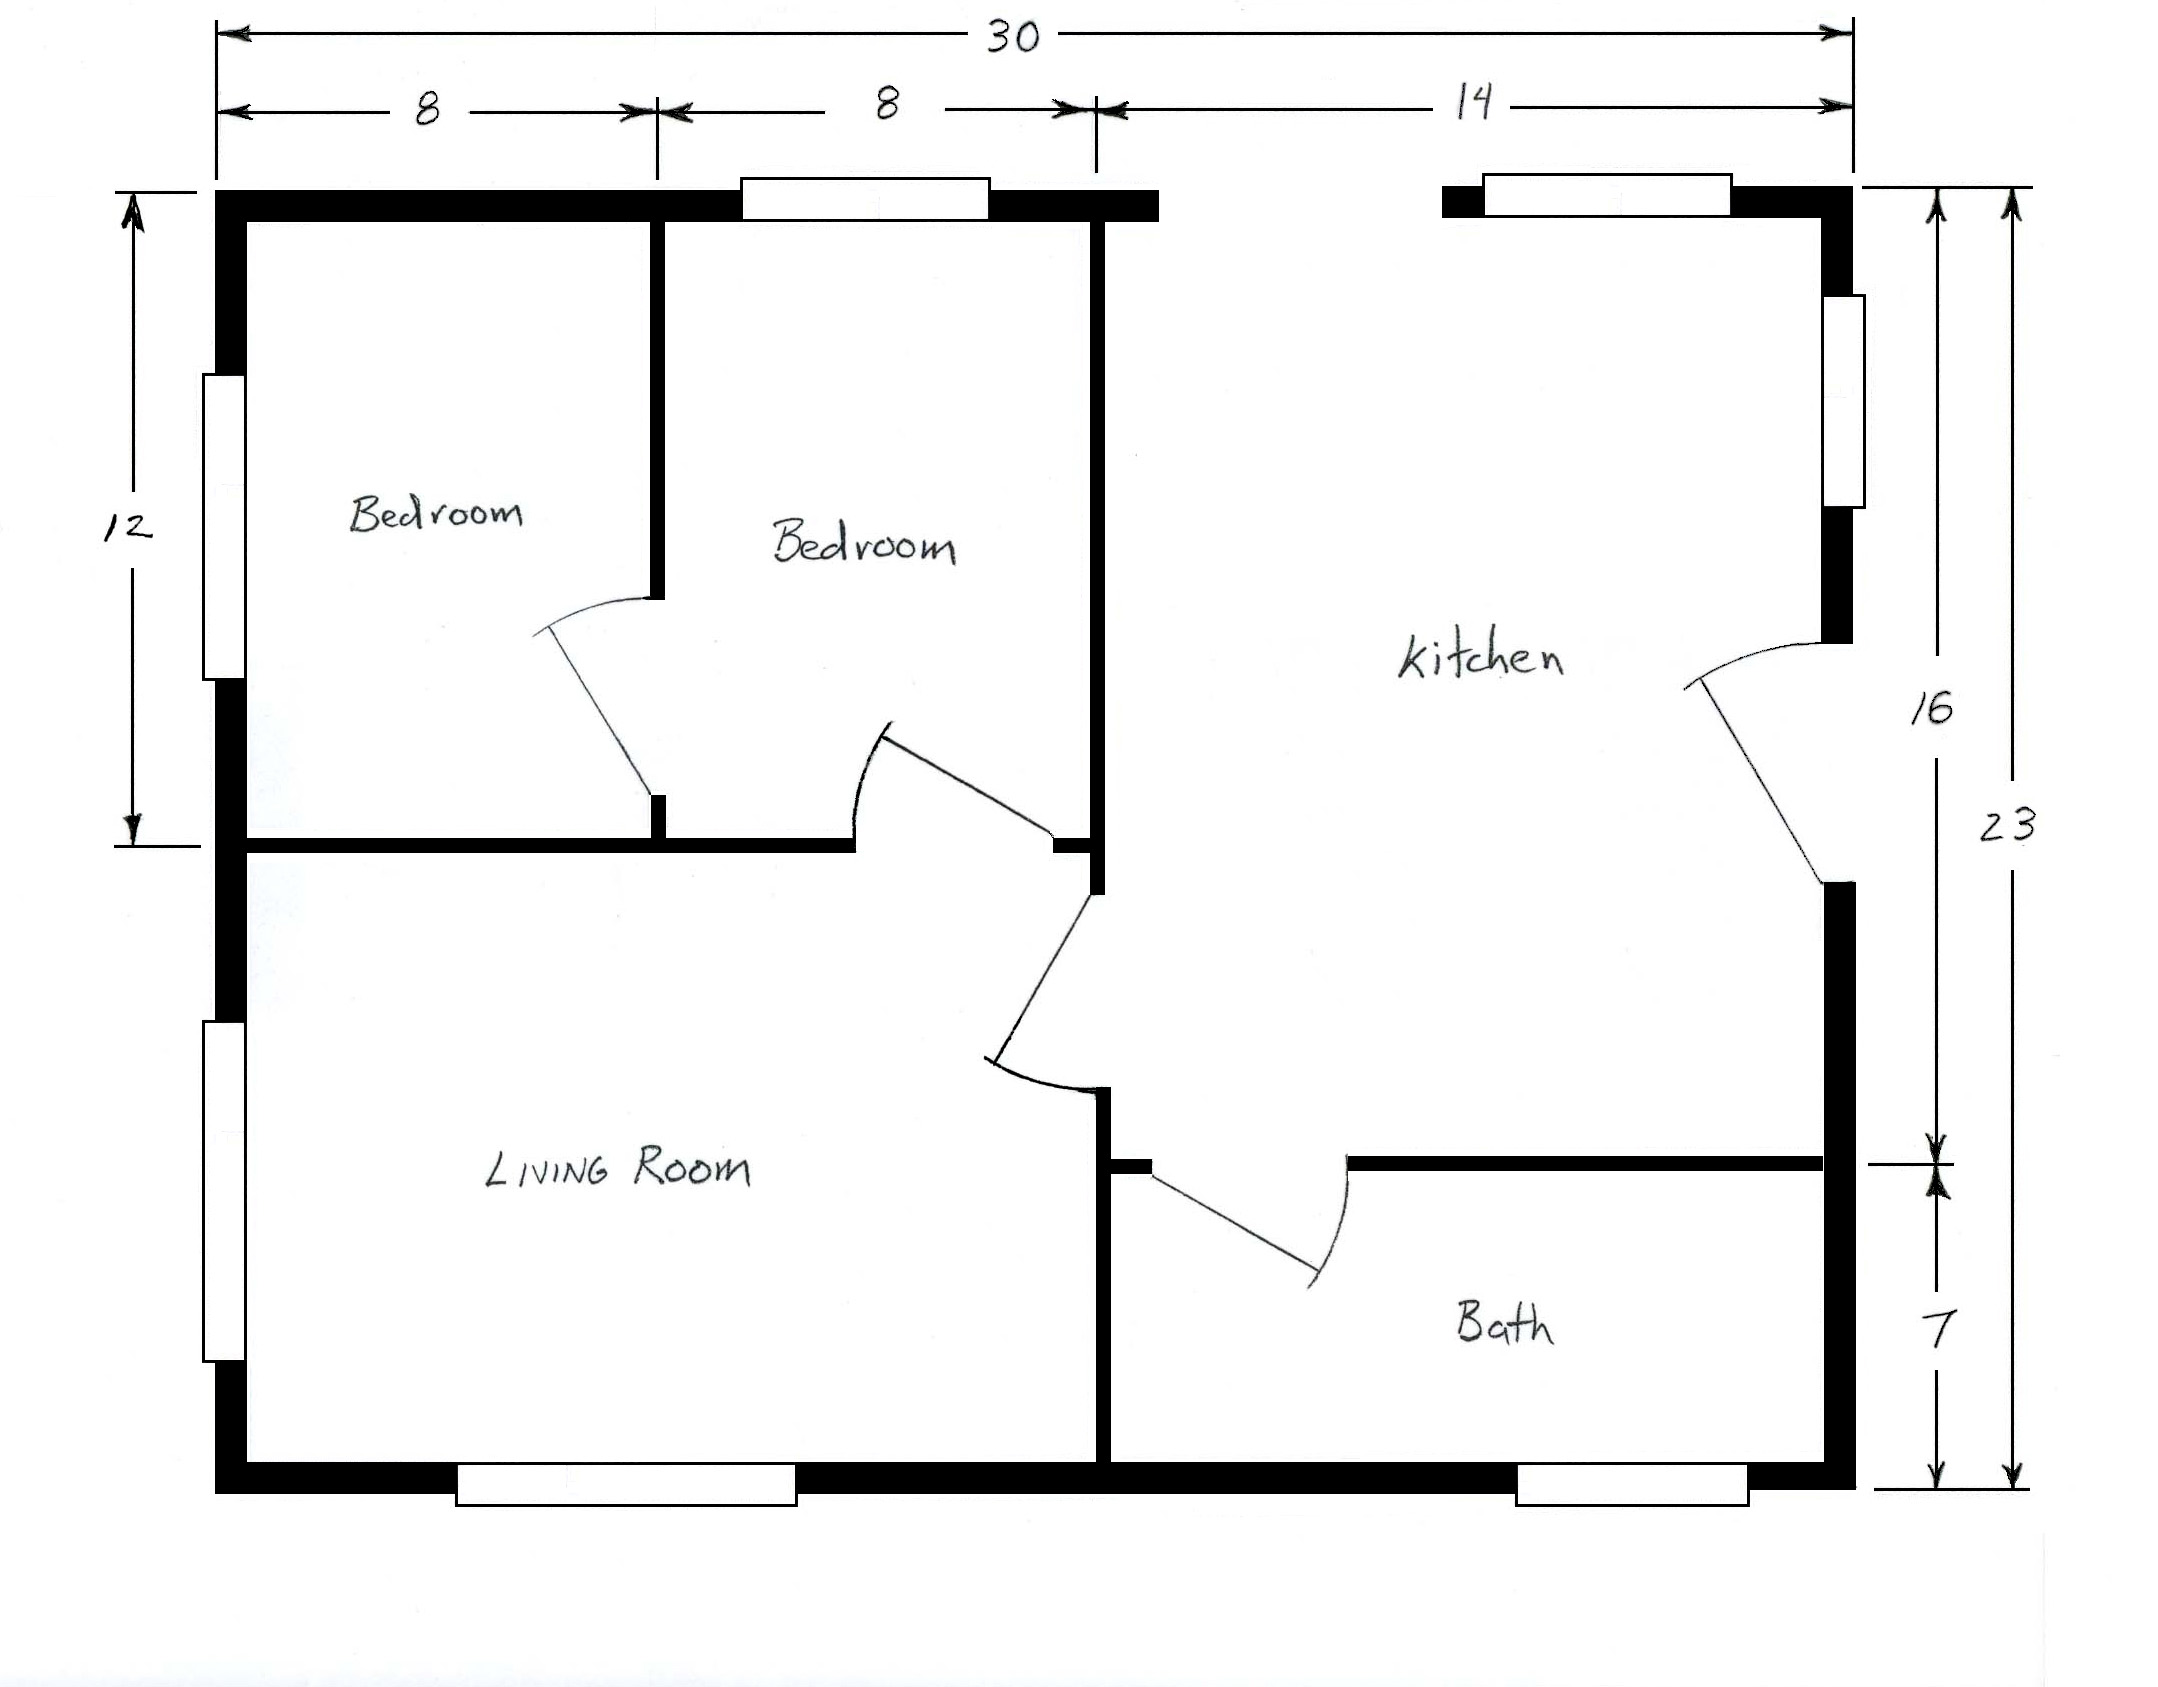 Free home plans sample house floor plans for Room design layout templates